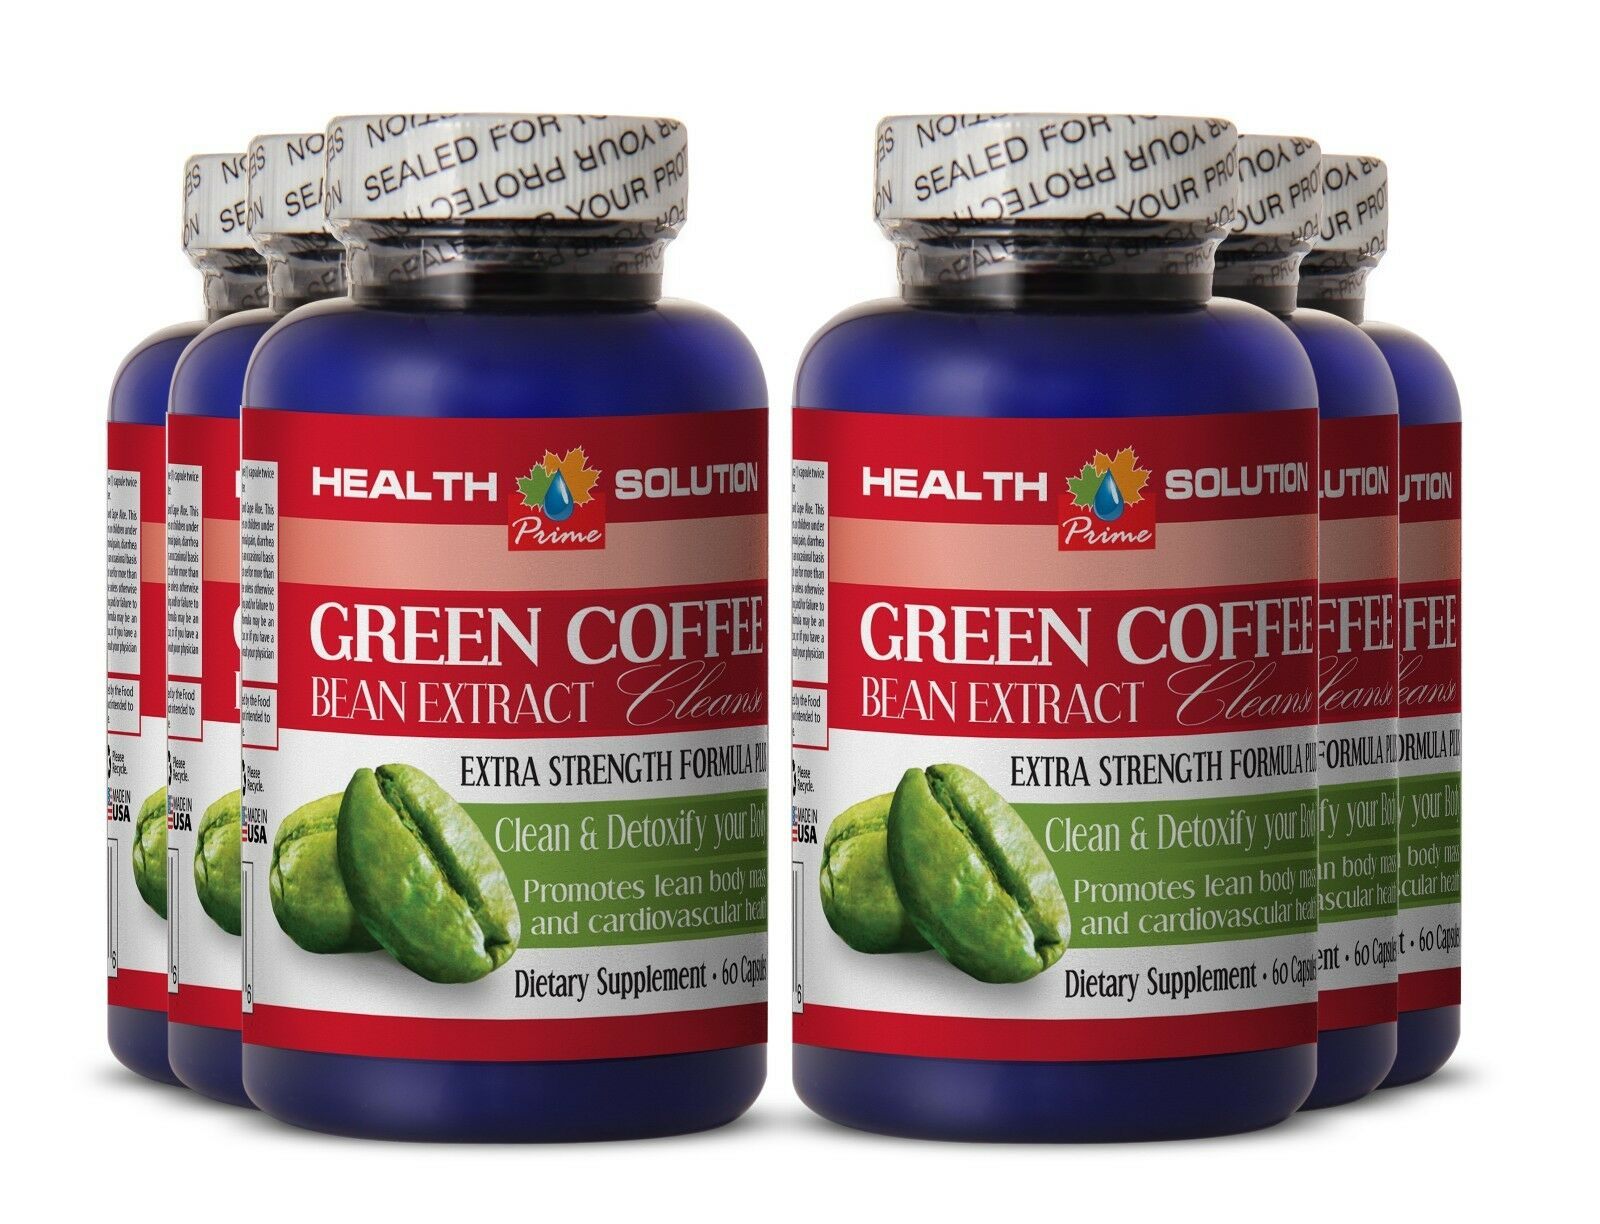 Lose Weight Fast   Fat Burner For Women   GREEN COFFE BEAN EXTRACT CLEANSE 6 Bot